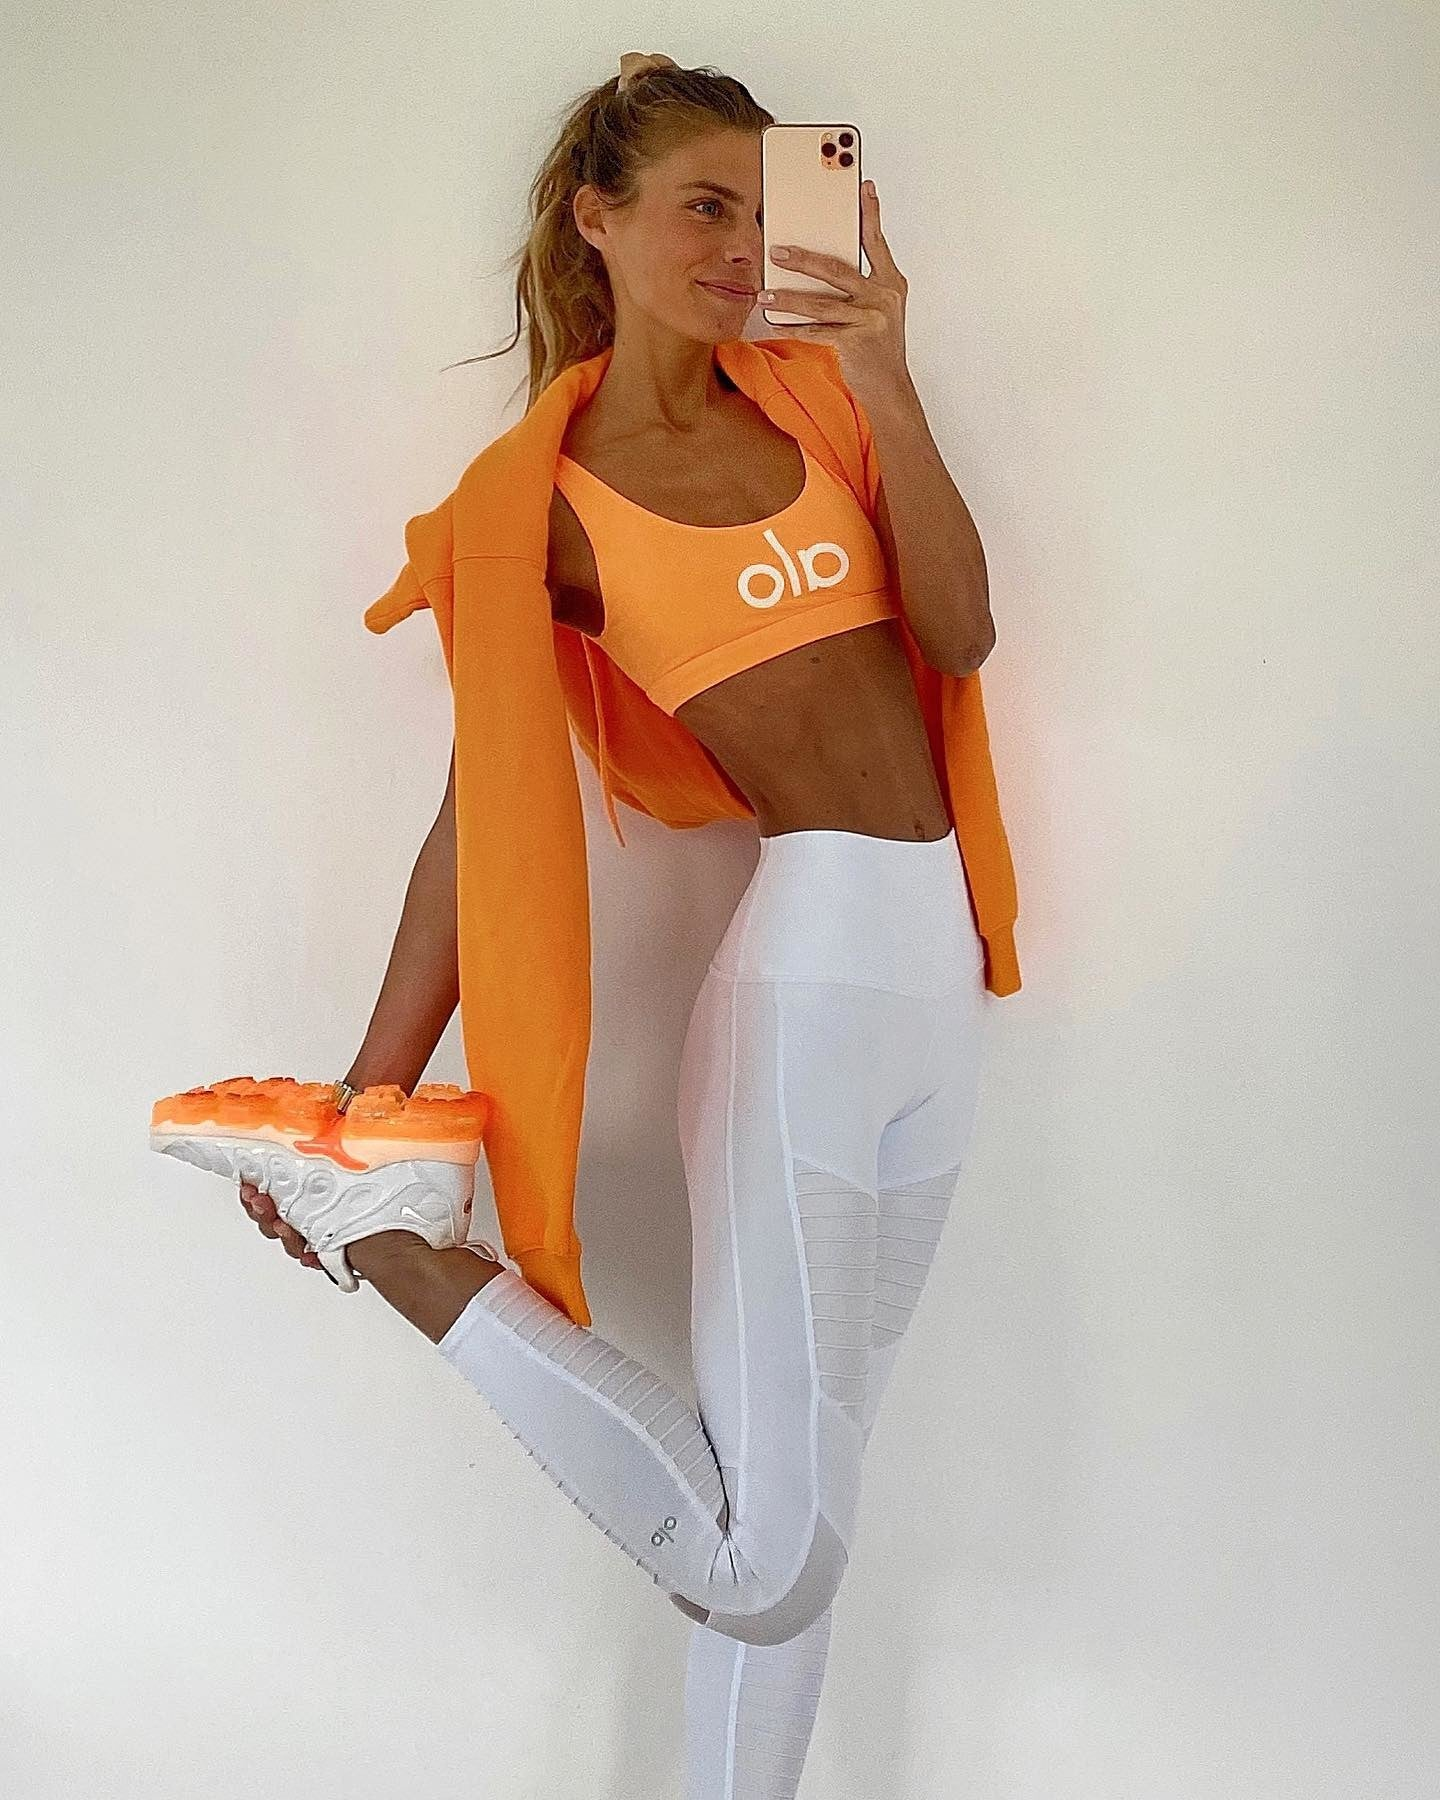 @debiflue wearing white cropped leggings that hit right above the ankle paired with a neon orange sports bra and hoodie for a perfect workout look.